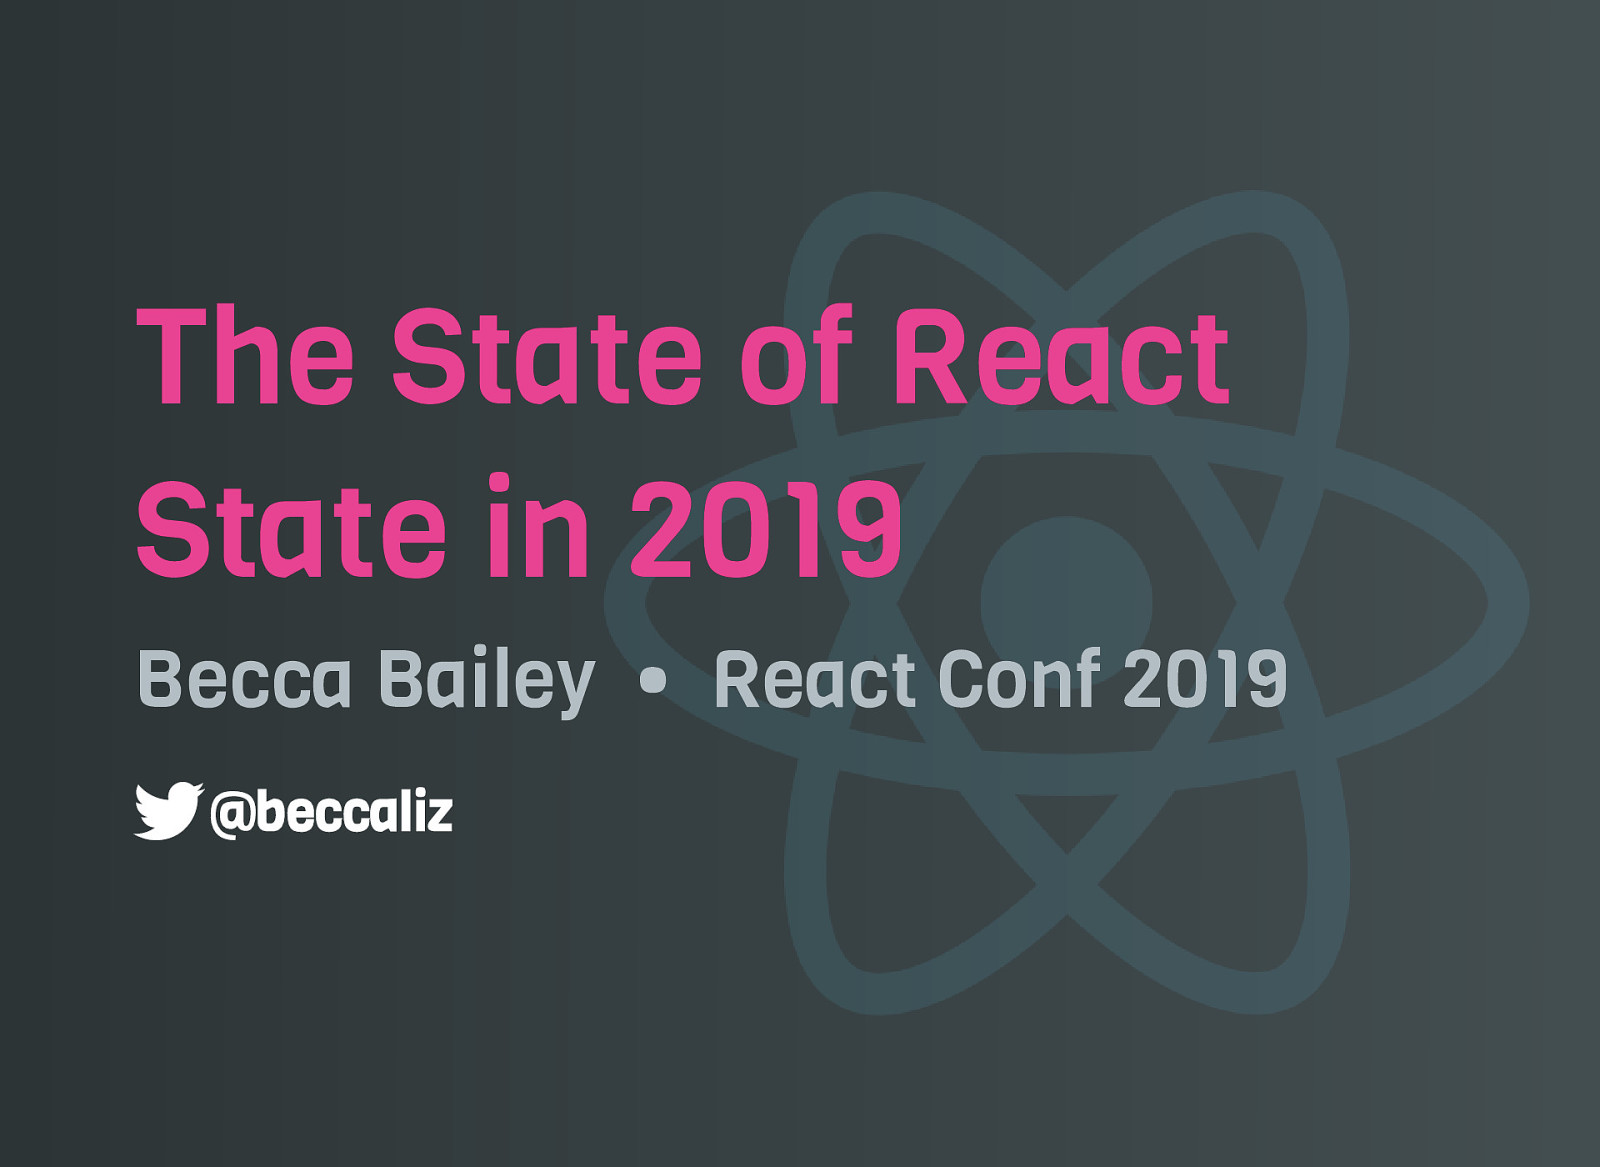 The State of React State in 2019